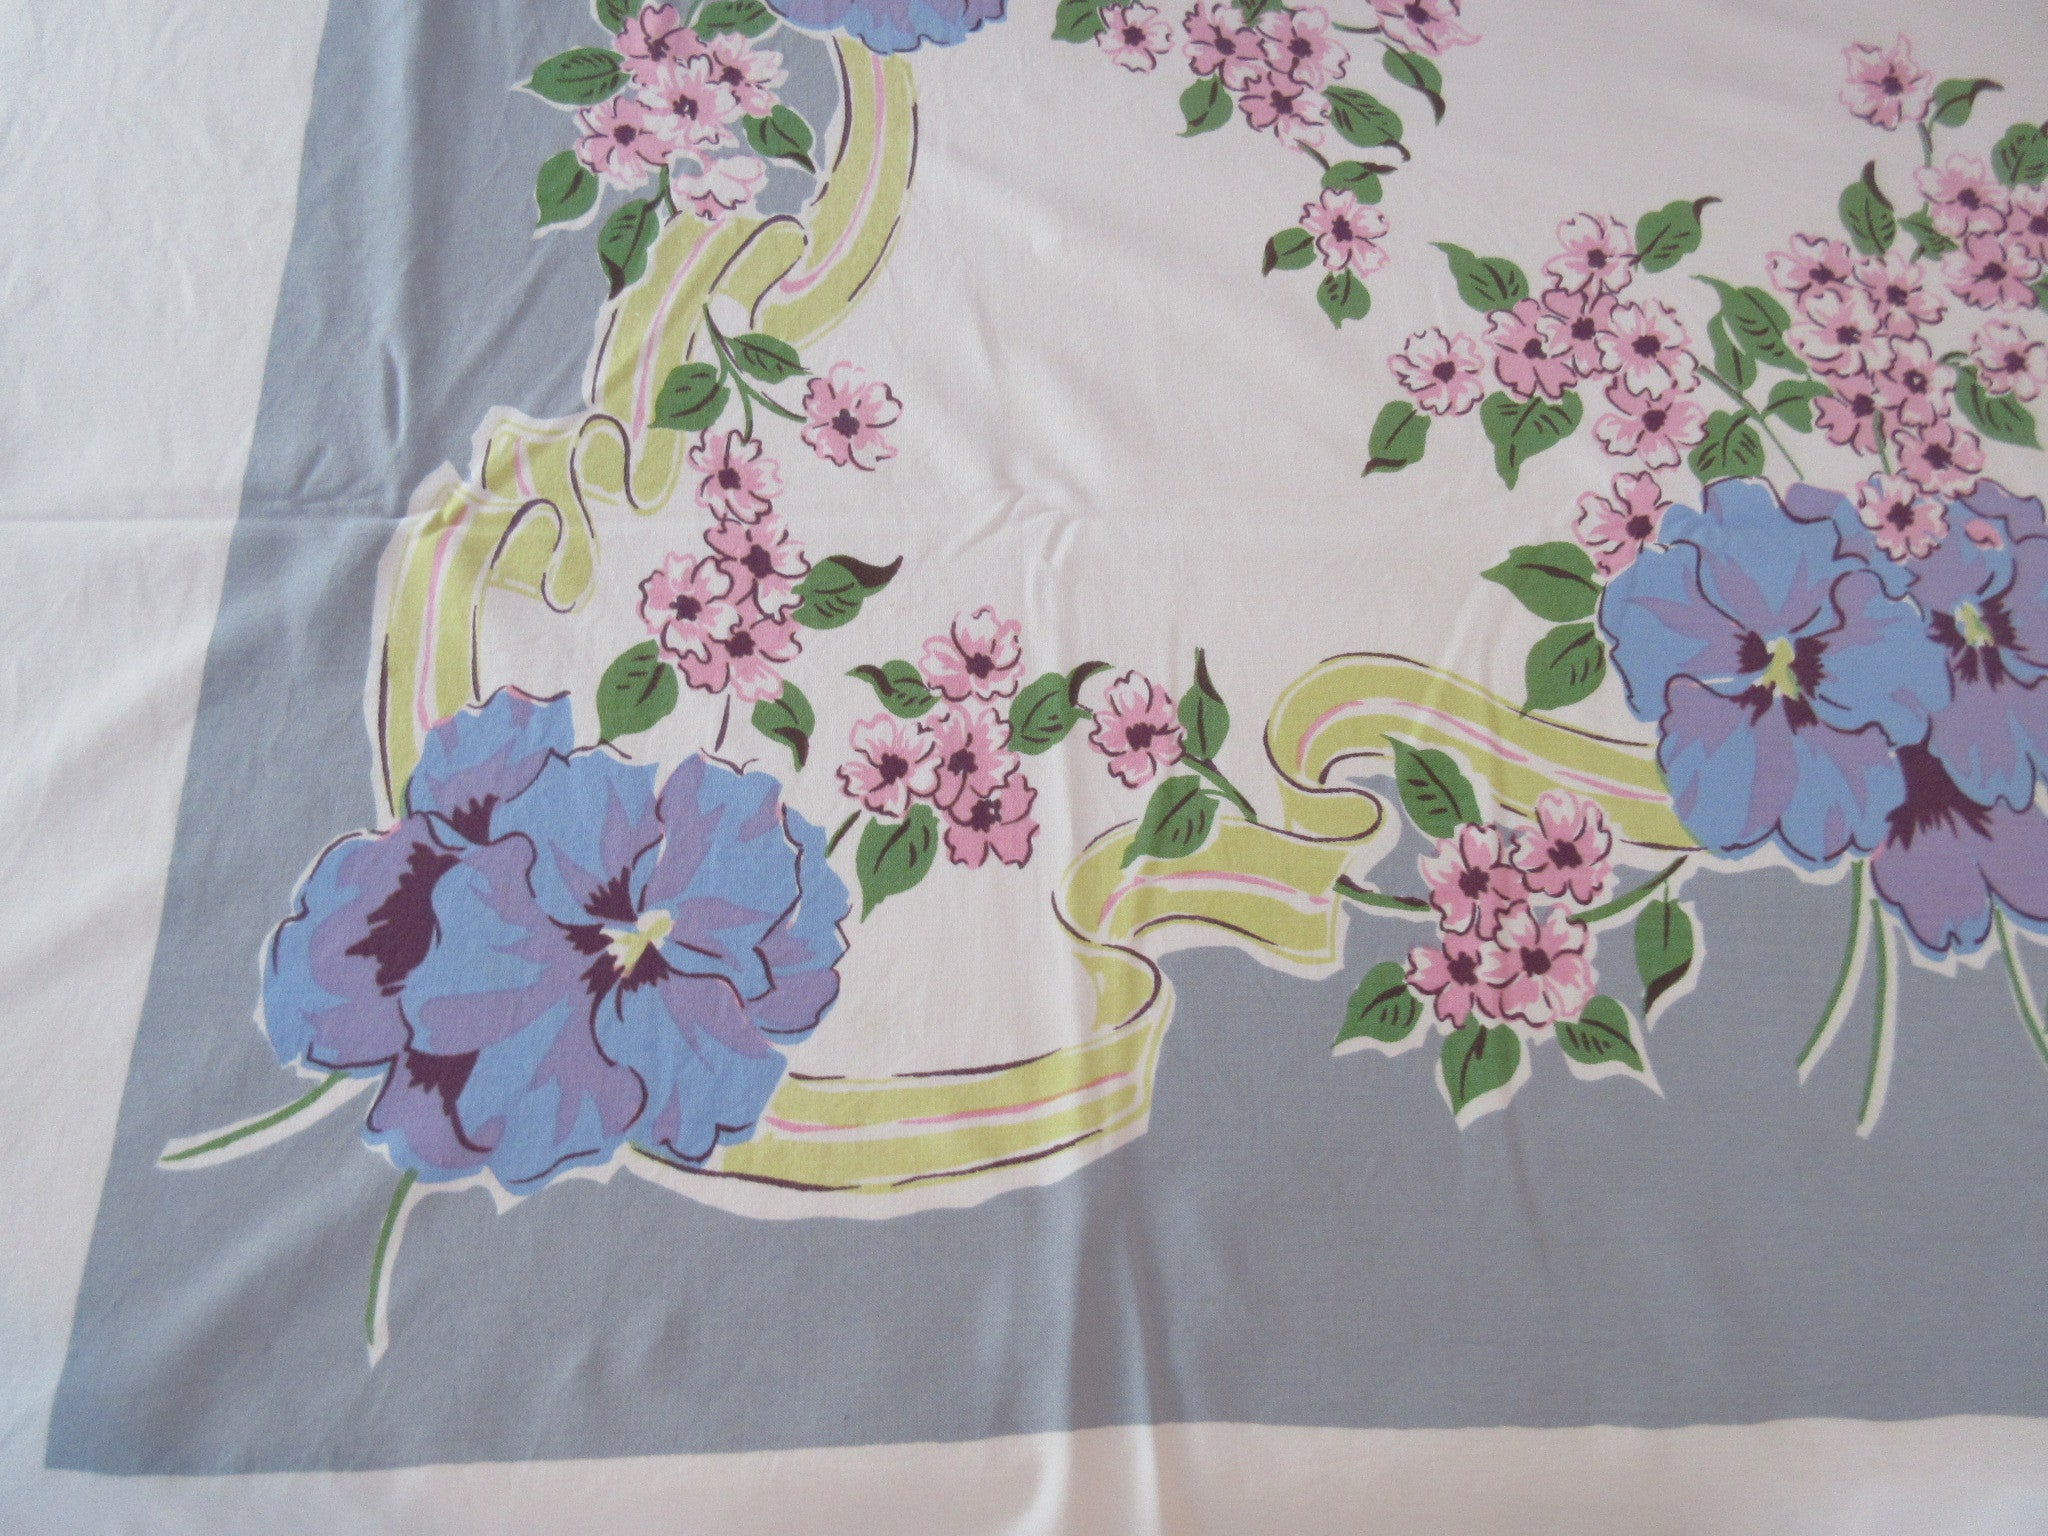 Purple Pansies Yellow Ribbons on Gray Cutter? Vintage Printed Tablecloth (62 X 49)